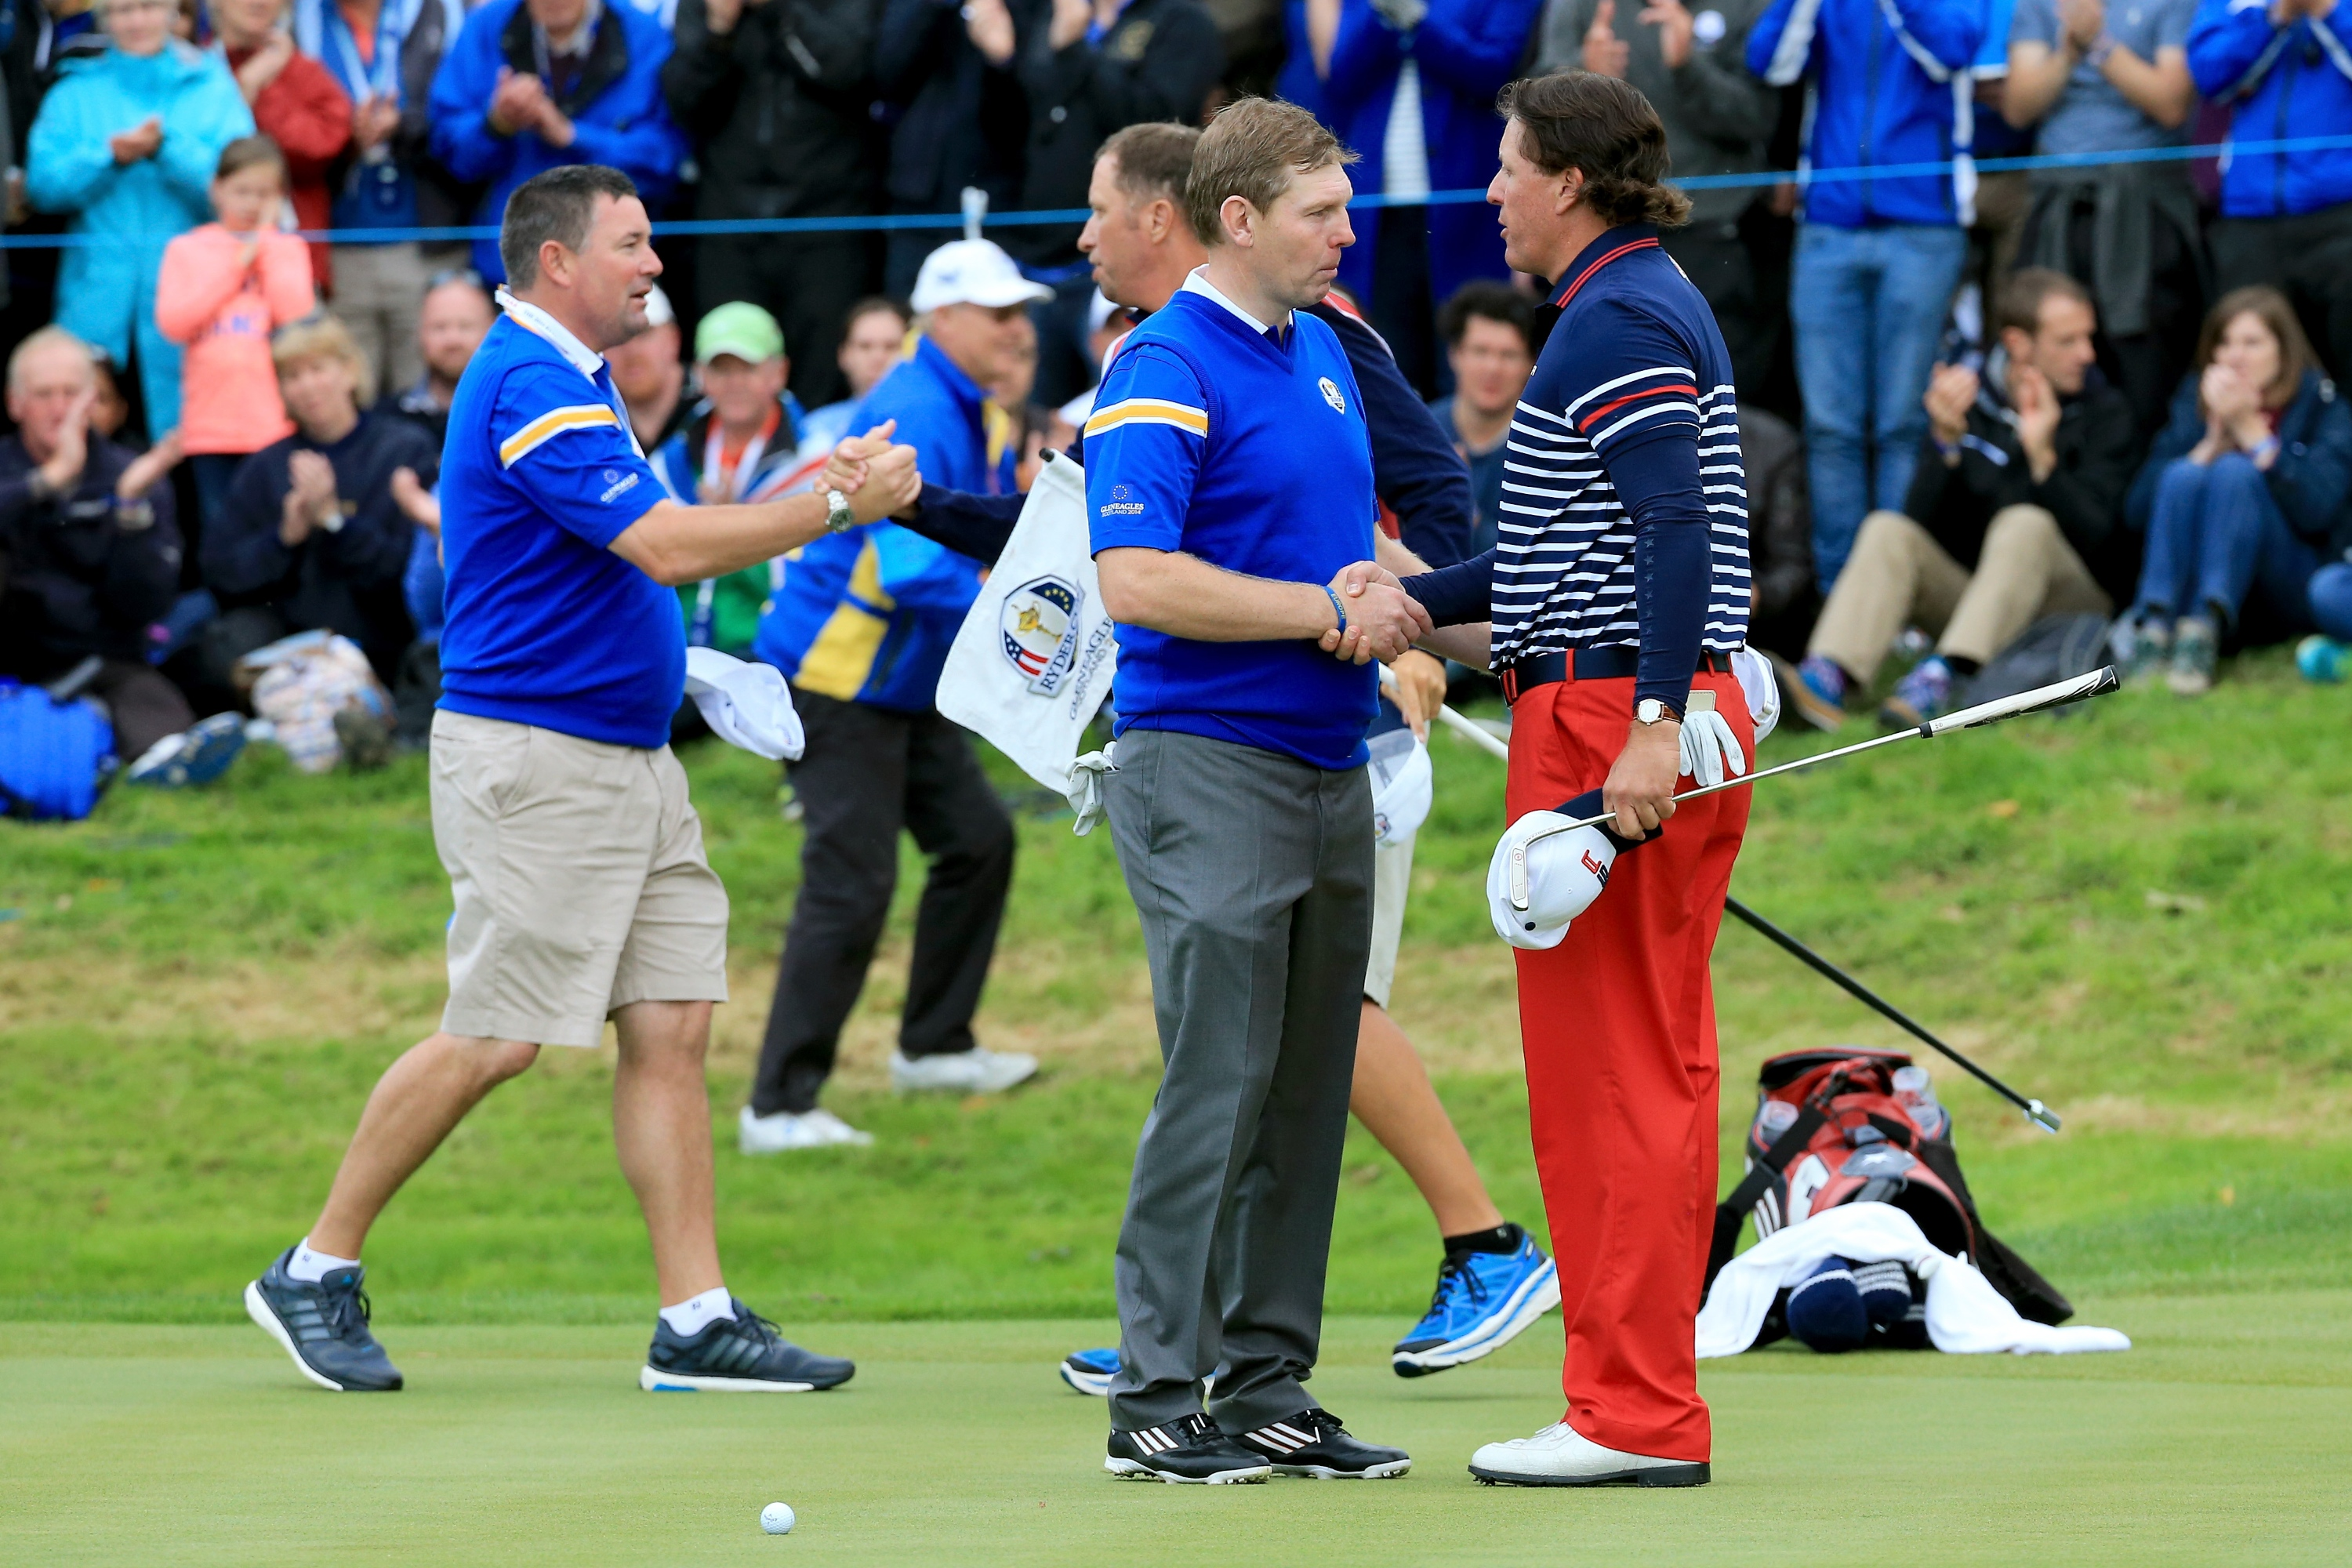 AUCHTERARDER, SCOTLAND - SEPTEMBER 28: Stephen Gallacher of Europe shakes hands with Phil Mickelson of the United States after his defeat on the 17th hole during the Singles Matches of the 2014 Ryder Cup on the PGA Centenary course at the Gleneagles Hotel on September 28, 2014 in Auchterarder, Scotland. (Photo by David Cannon/Getty Images)